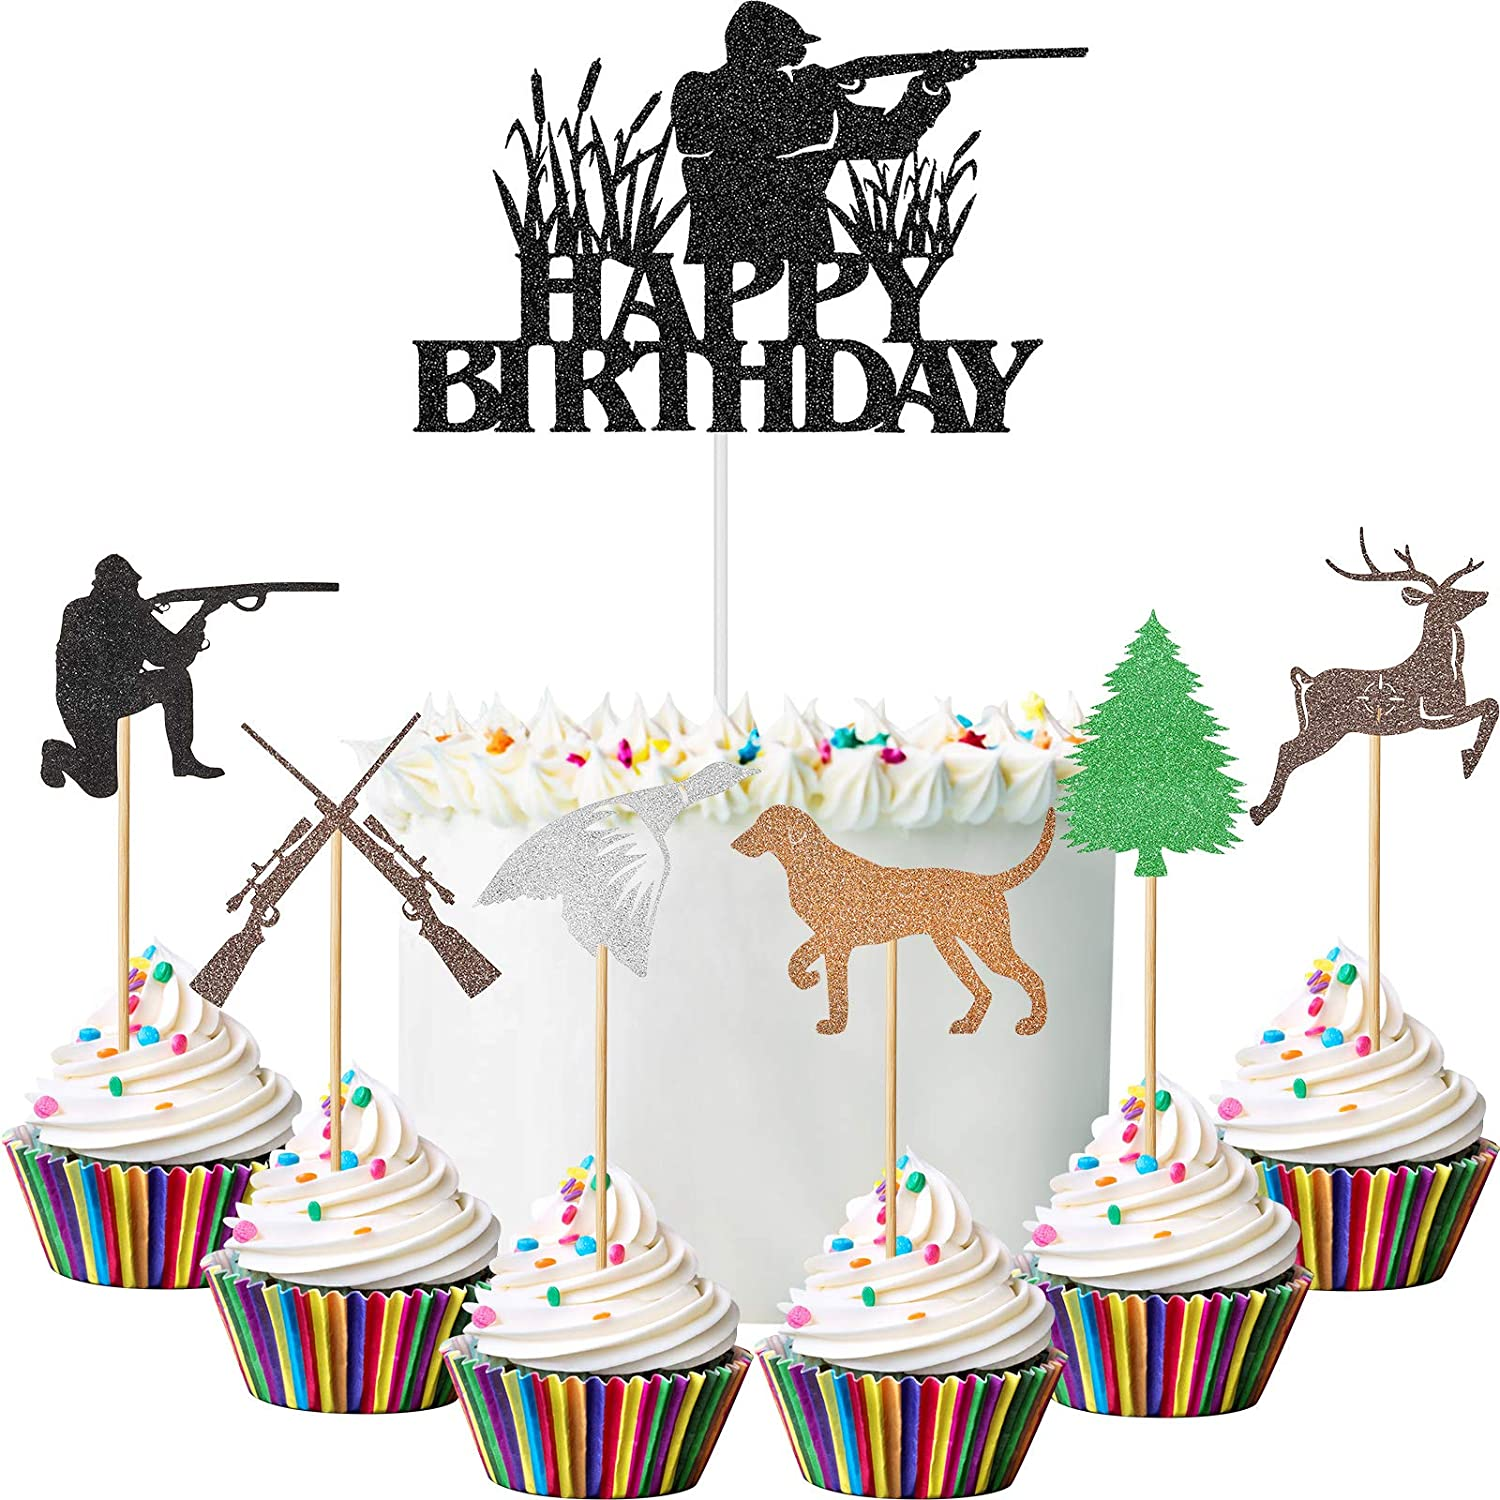 61 Pieces Hunting Cake Topper Set Hunting Birthday Silhouette Cake Topper Forest Hunting Theme Glitter Cupcake Topper Deer Handmade Cupcake Topper for Birthday Party Baby Shower Cake Decor